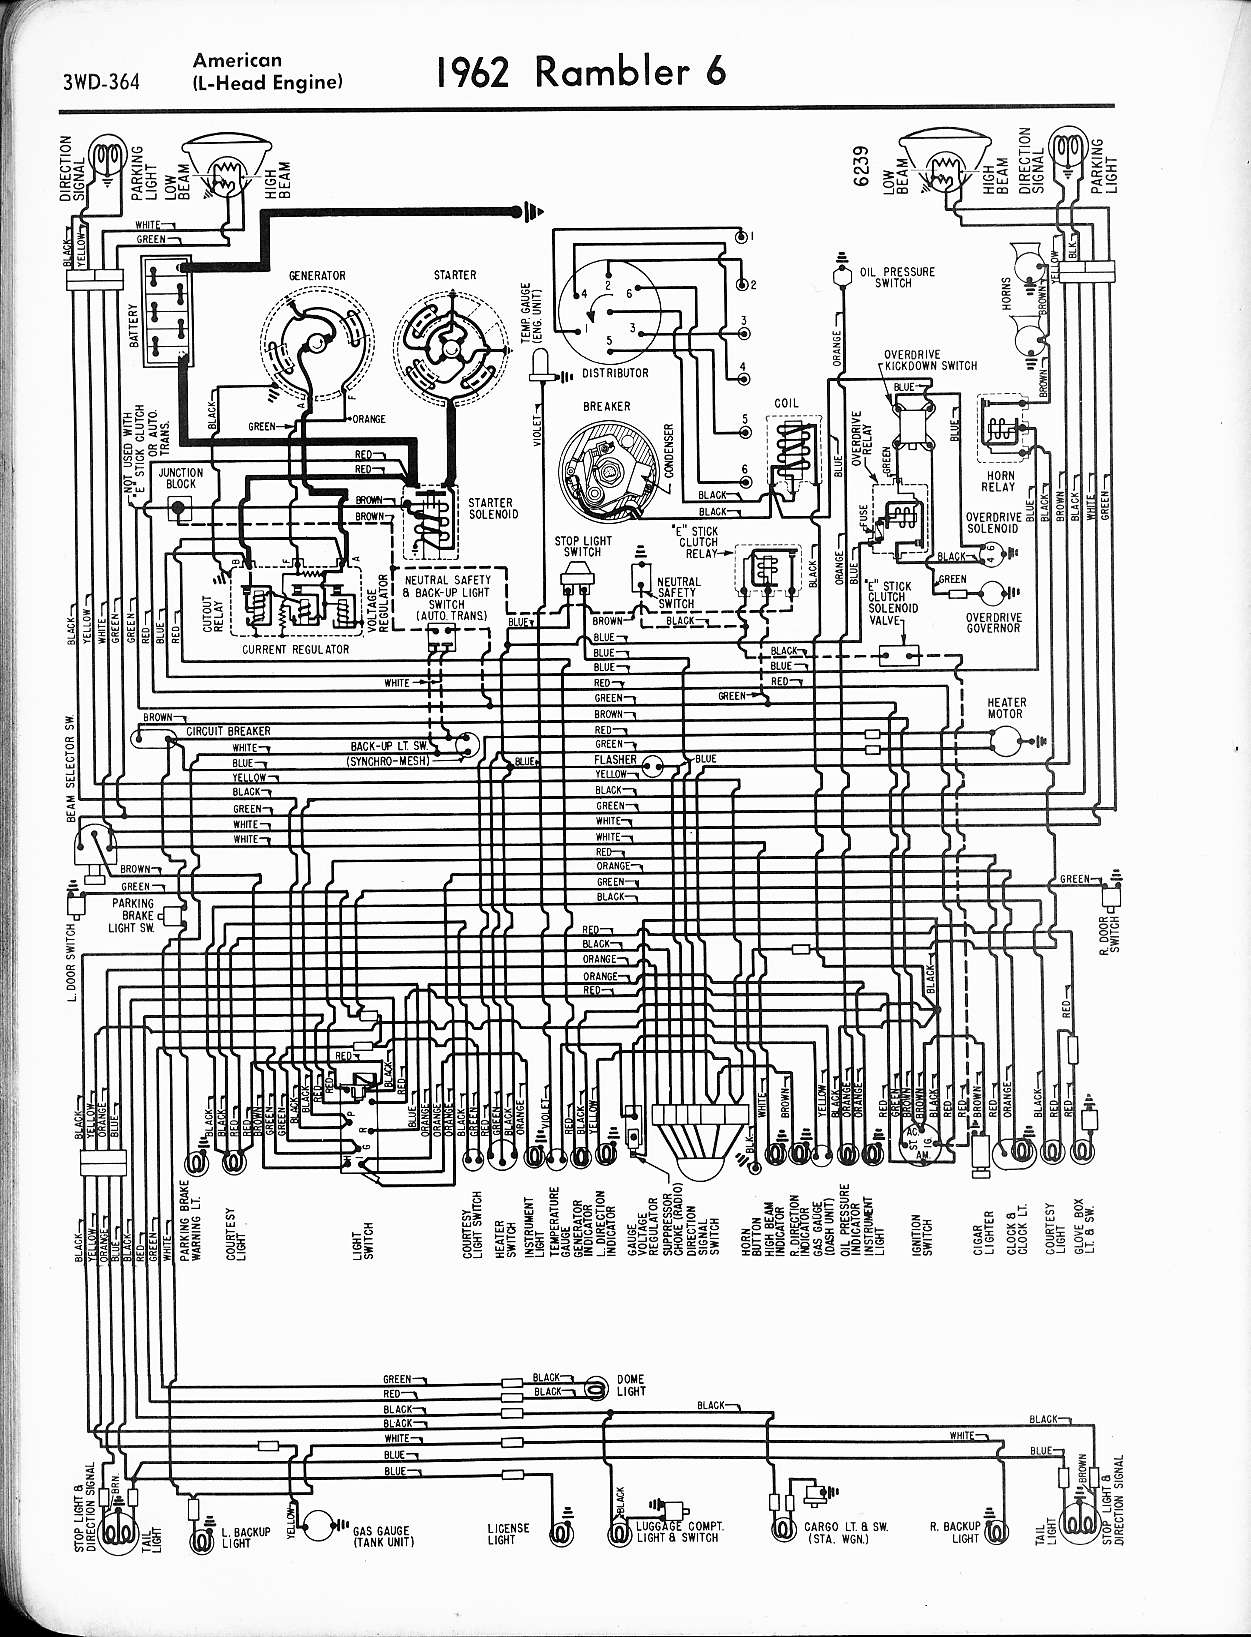 2003 Holiday Rambler Wiring Diagram from www.oldcarmanualproject.com